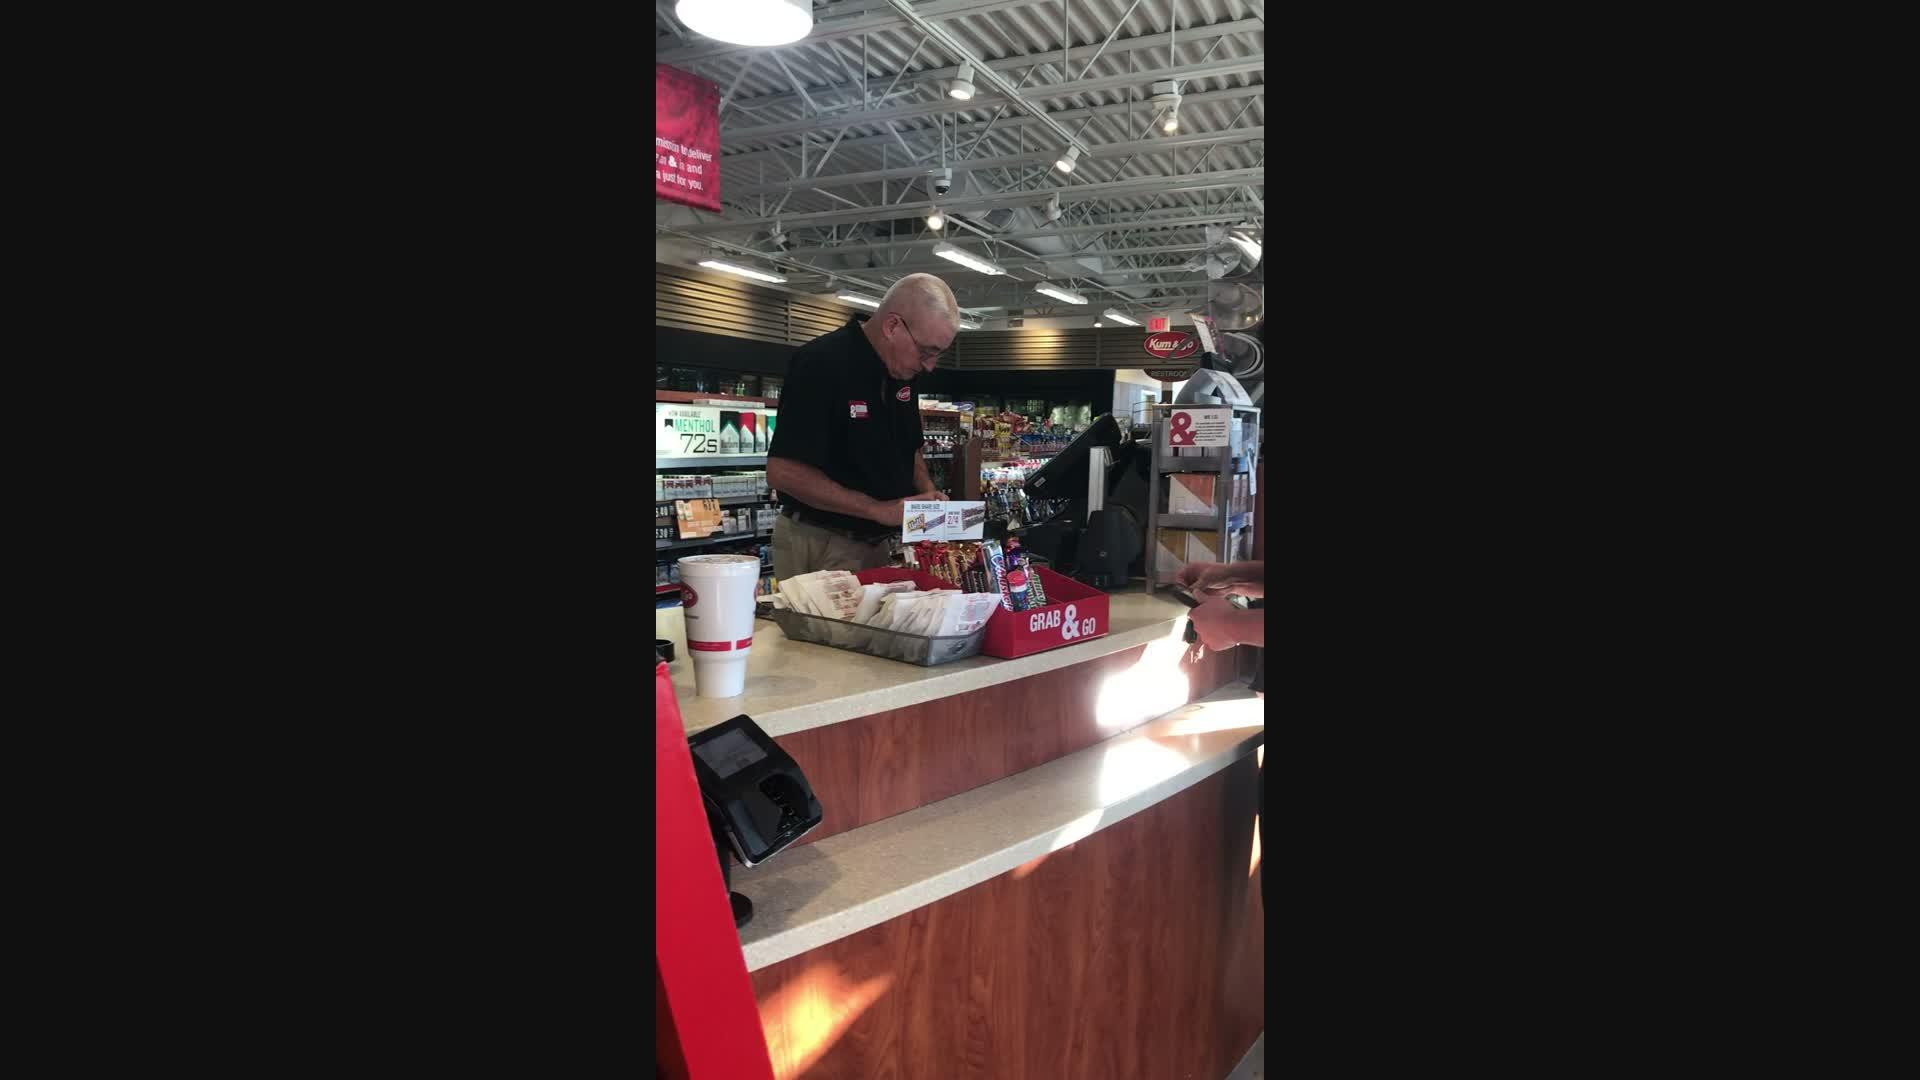 Gas Station Shows Poor Customer Service in Omaha